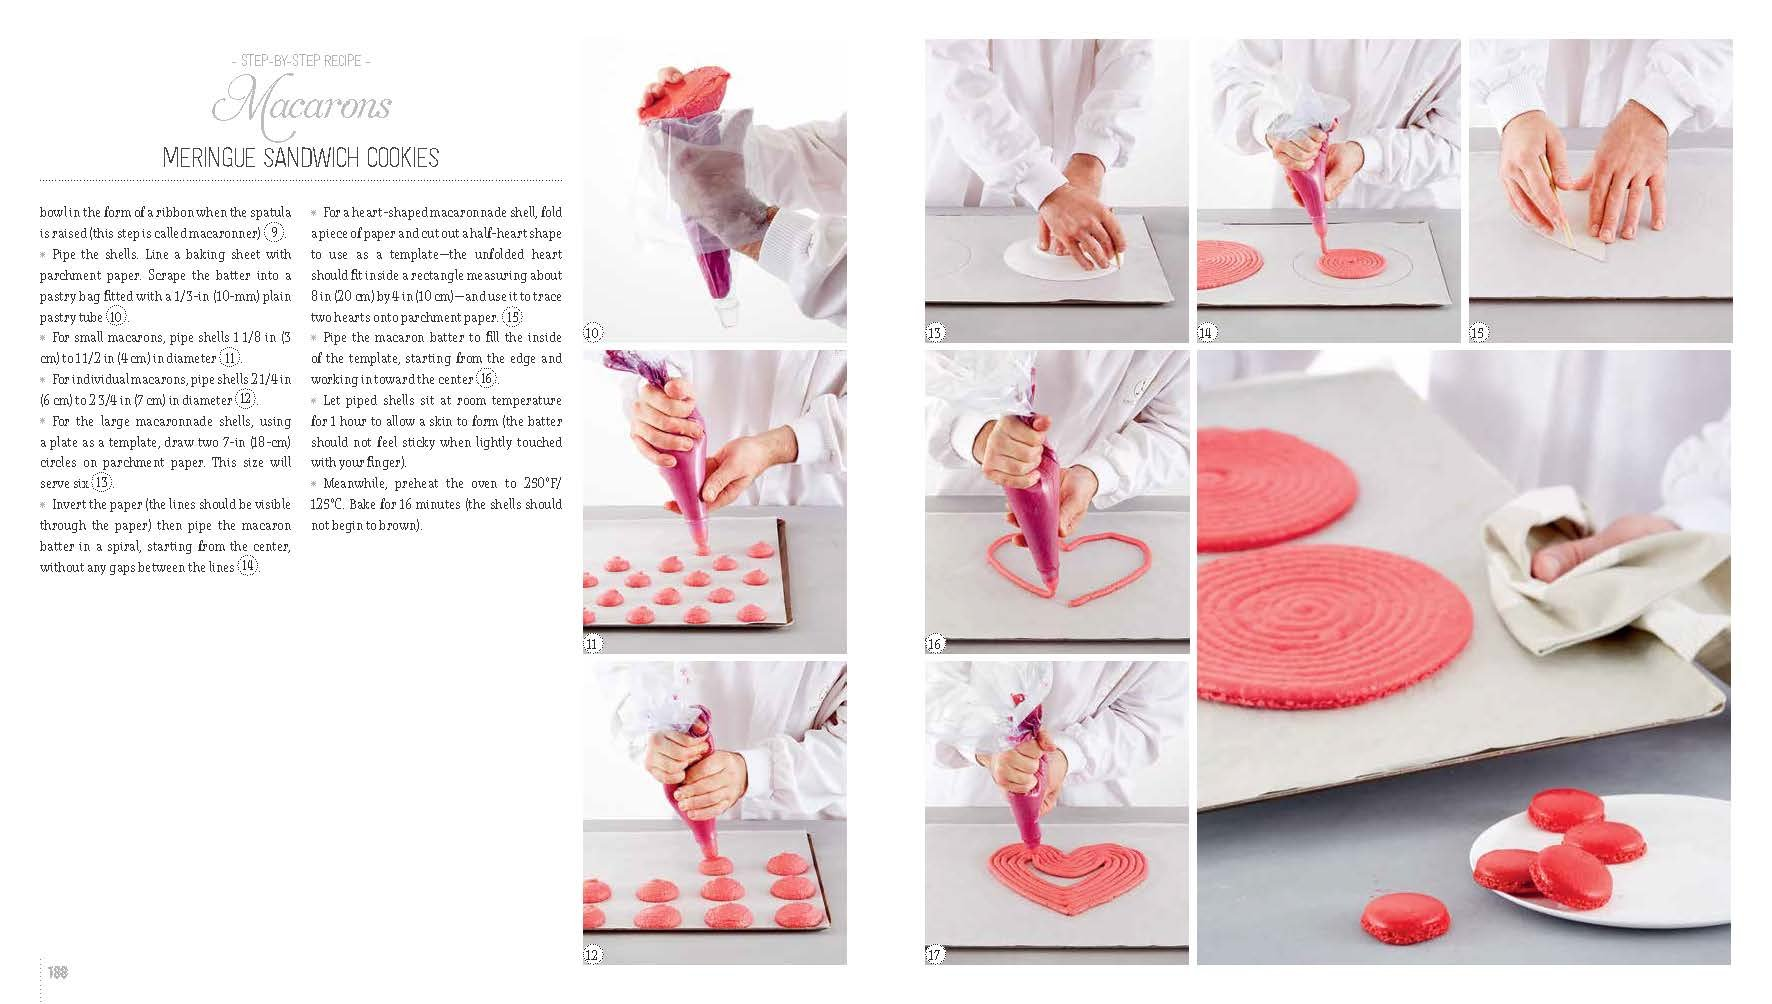 Maison Kaysers French Pastry Workshop Eric Kayser Voucher 9780316439275 Books